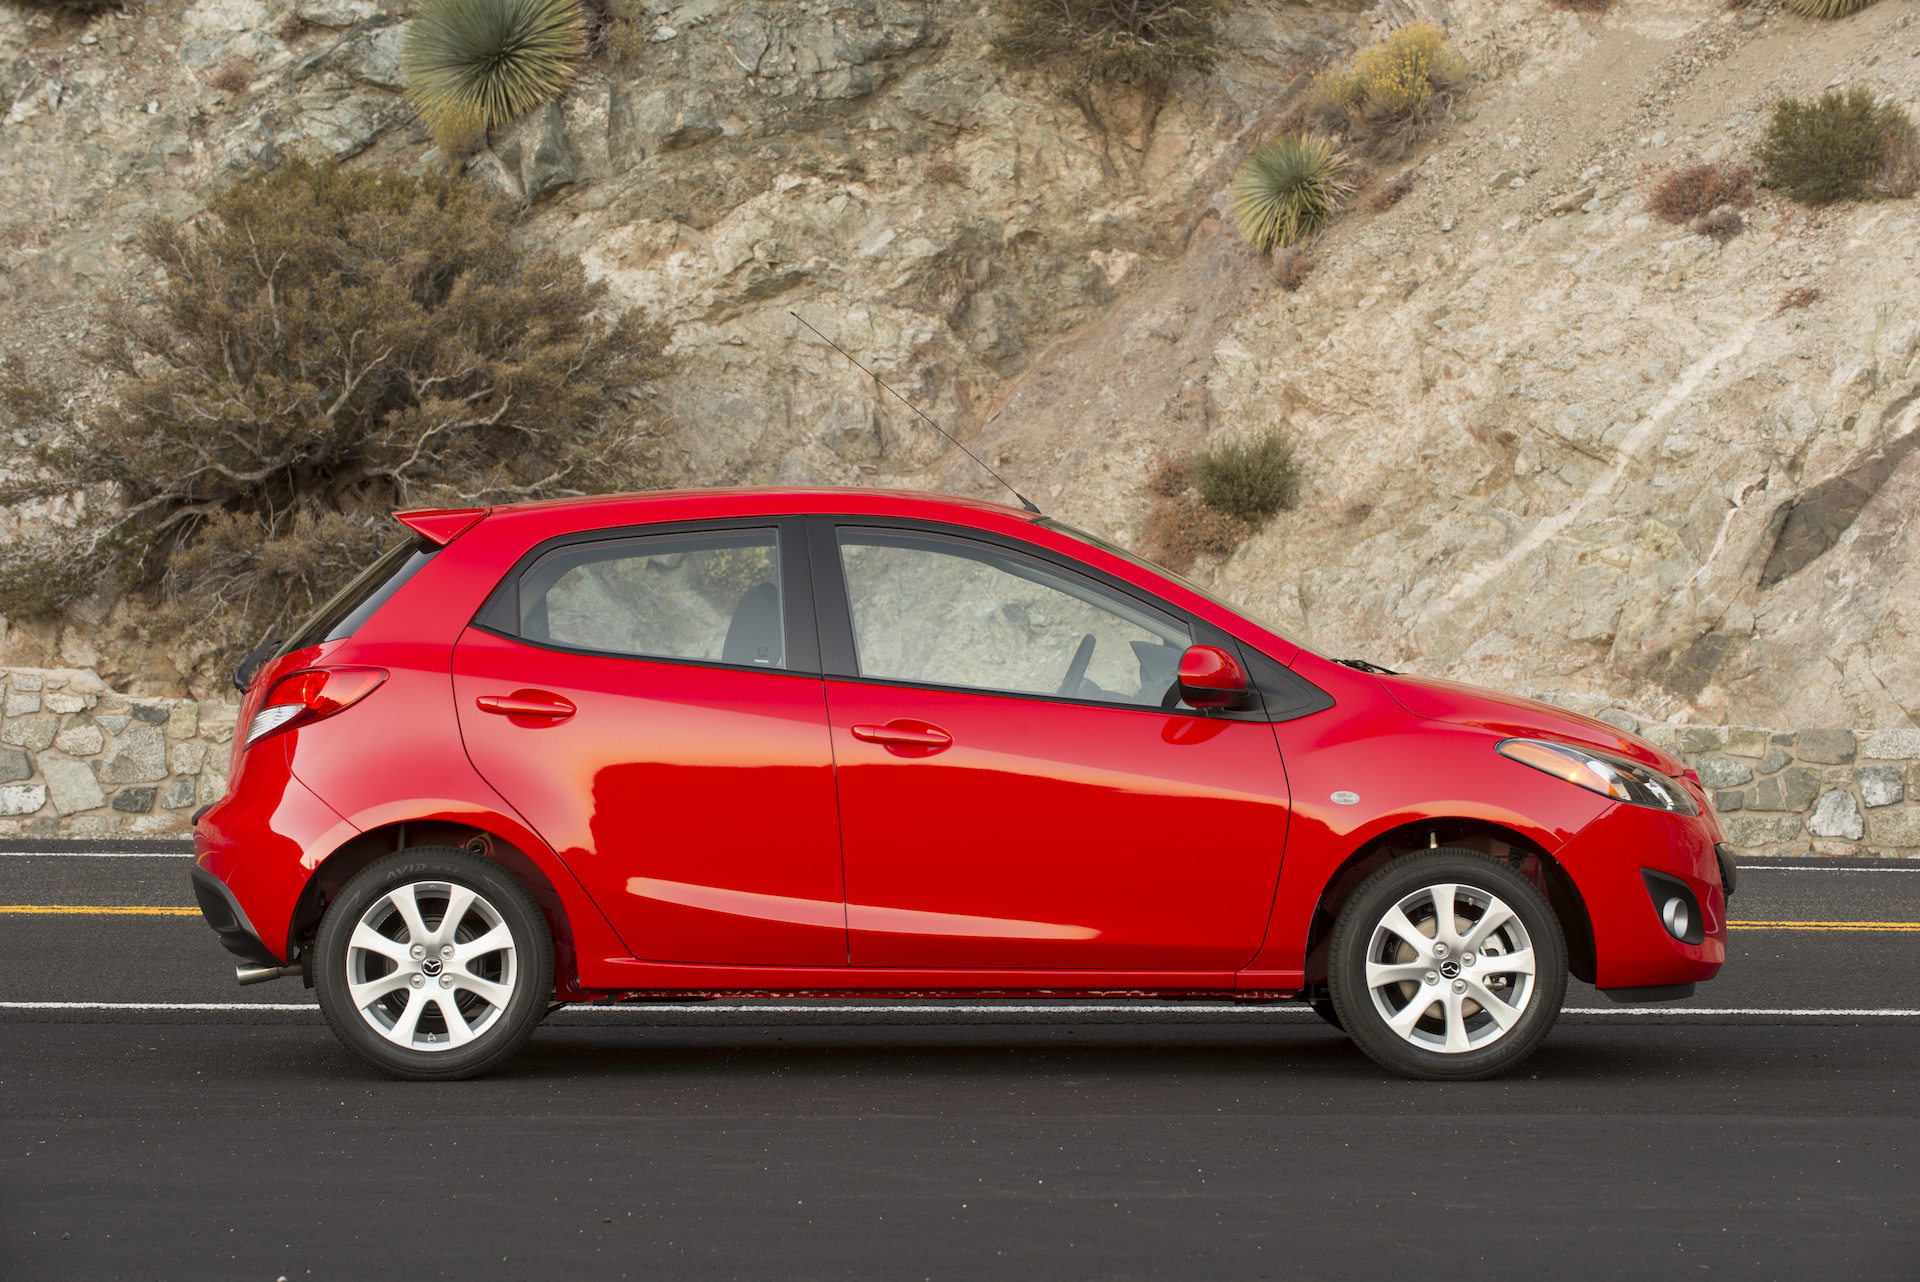 Cars For Sale In Indianapolis >> 2014 Mazda MAZDA2 Review, Ratings, Specs, Prices, and Photos - The Car Connection